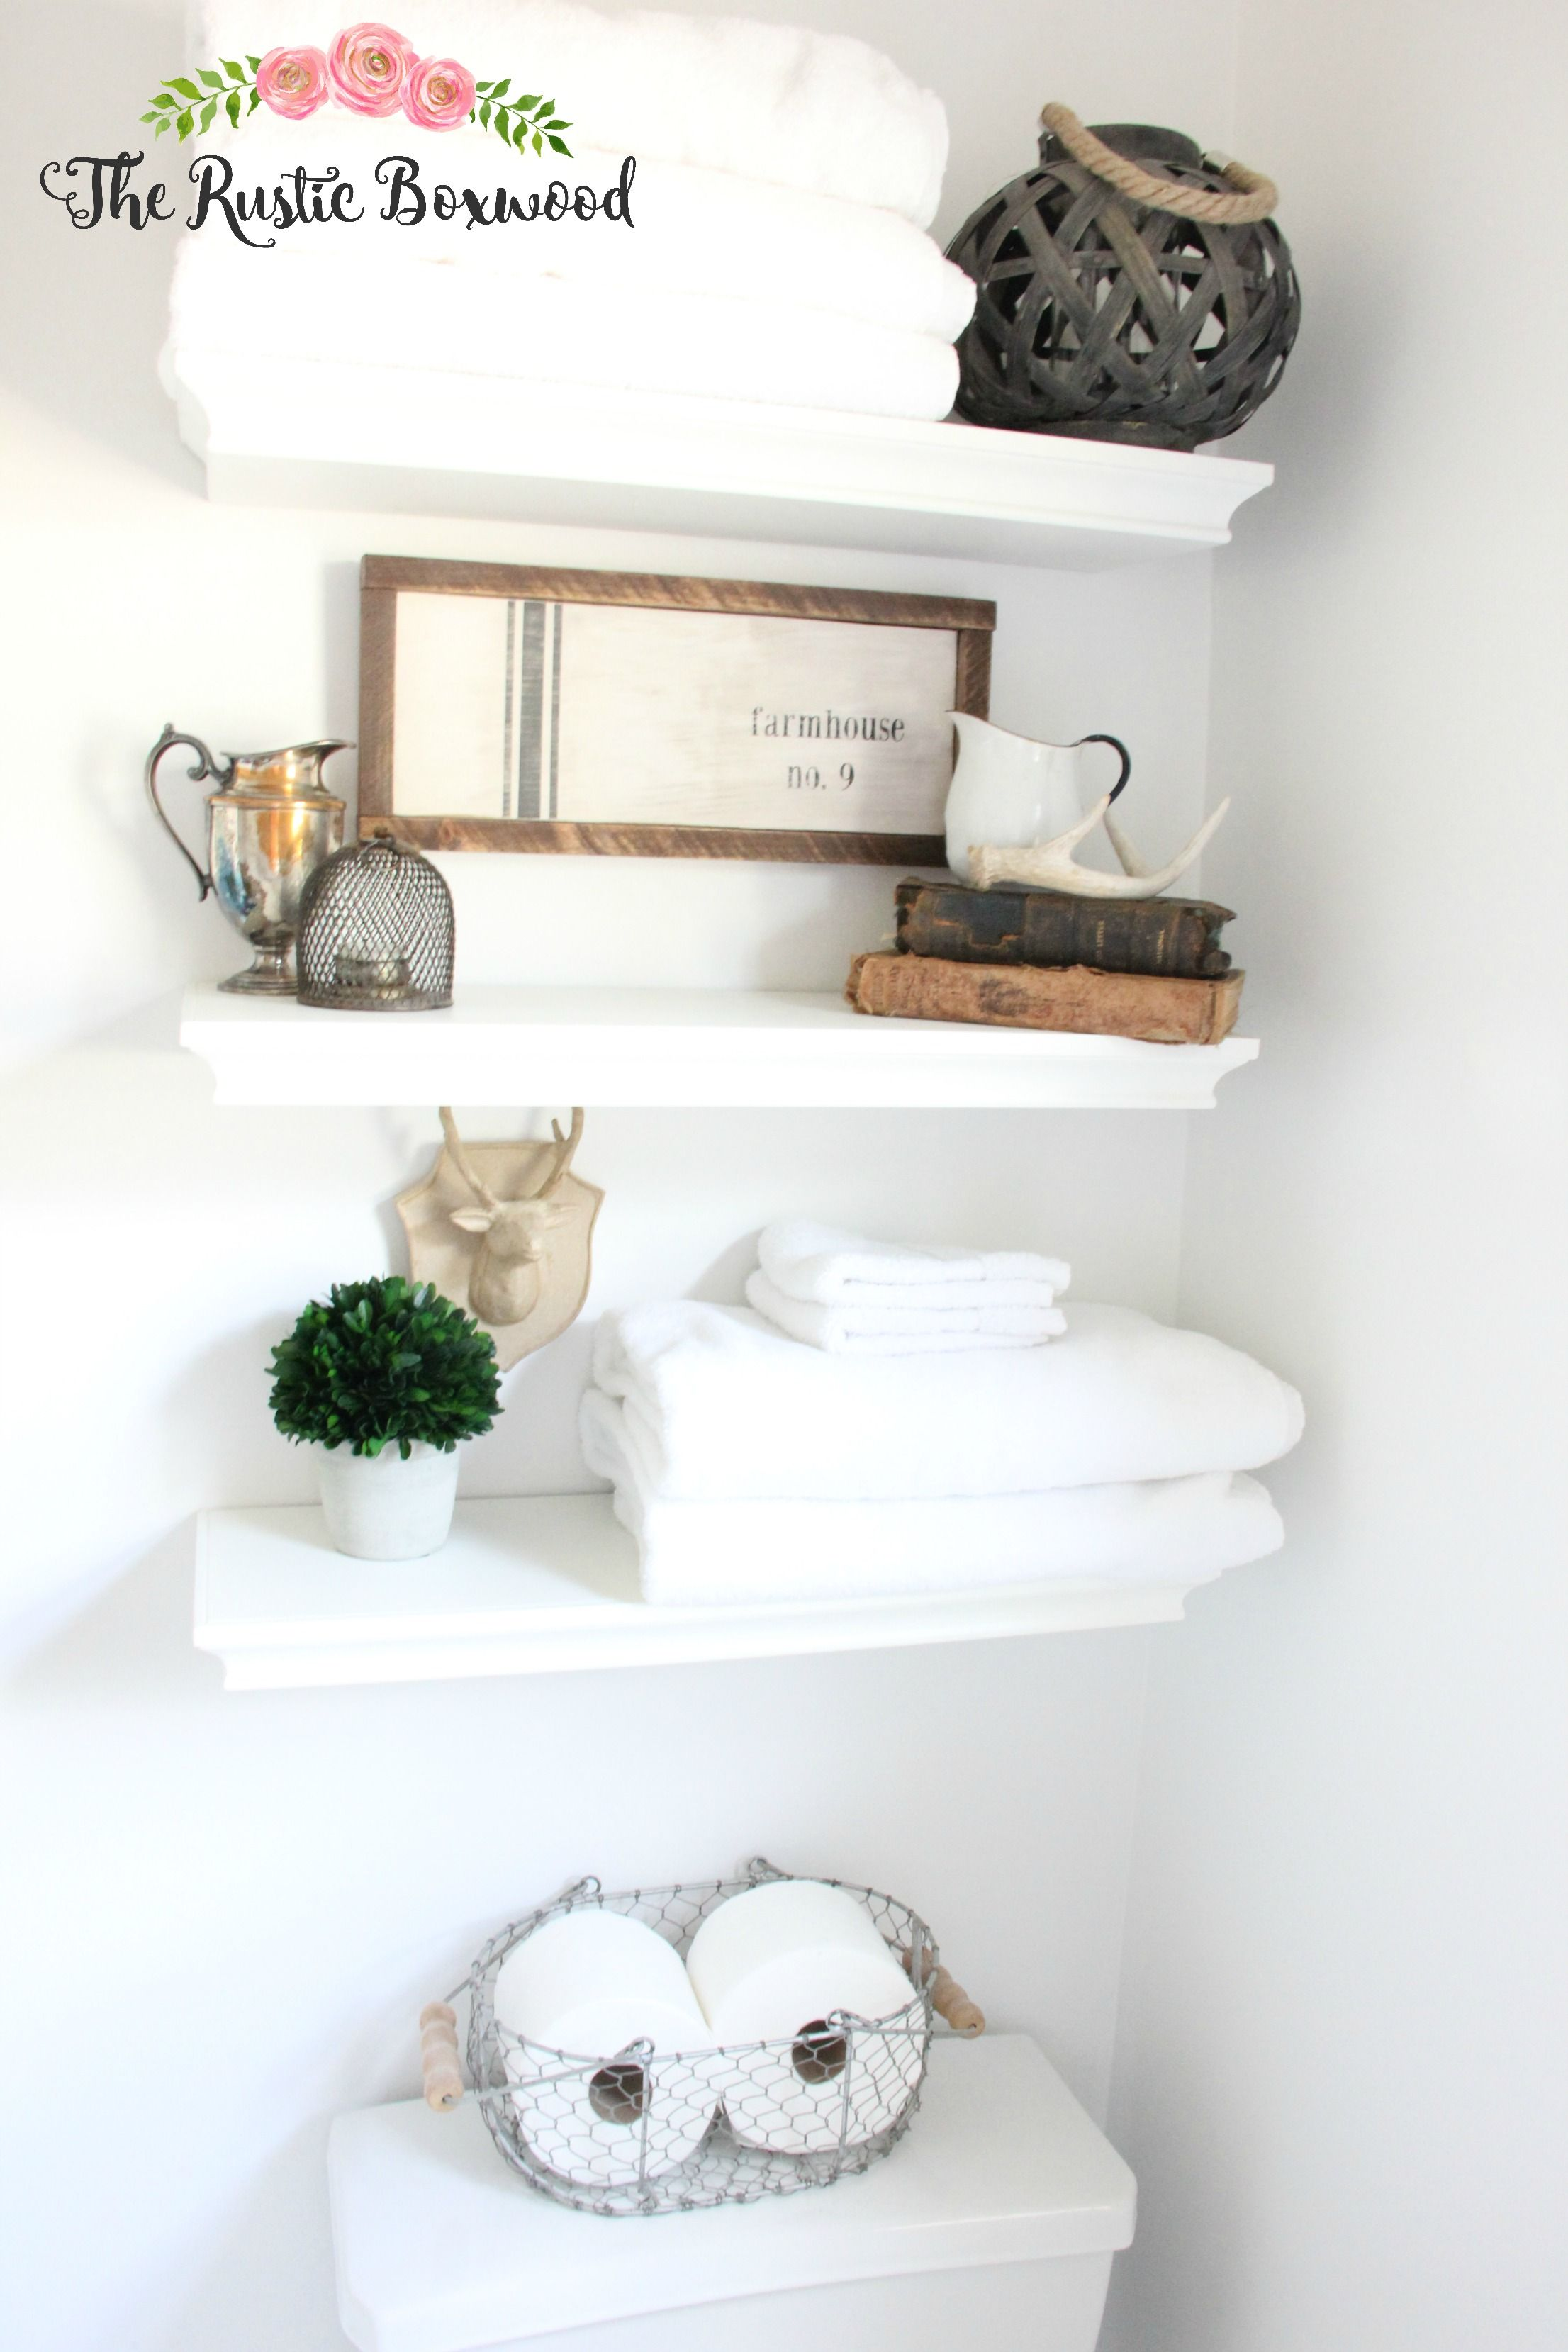 Guest Bathroom Makeover Reveal | The Rustic Boxwood blog | before ...